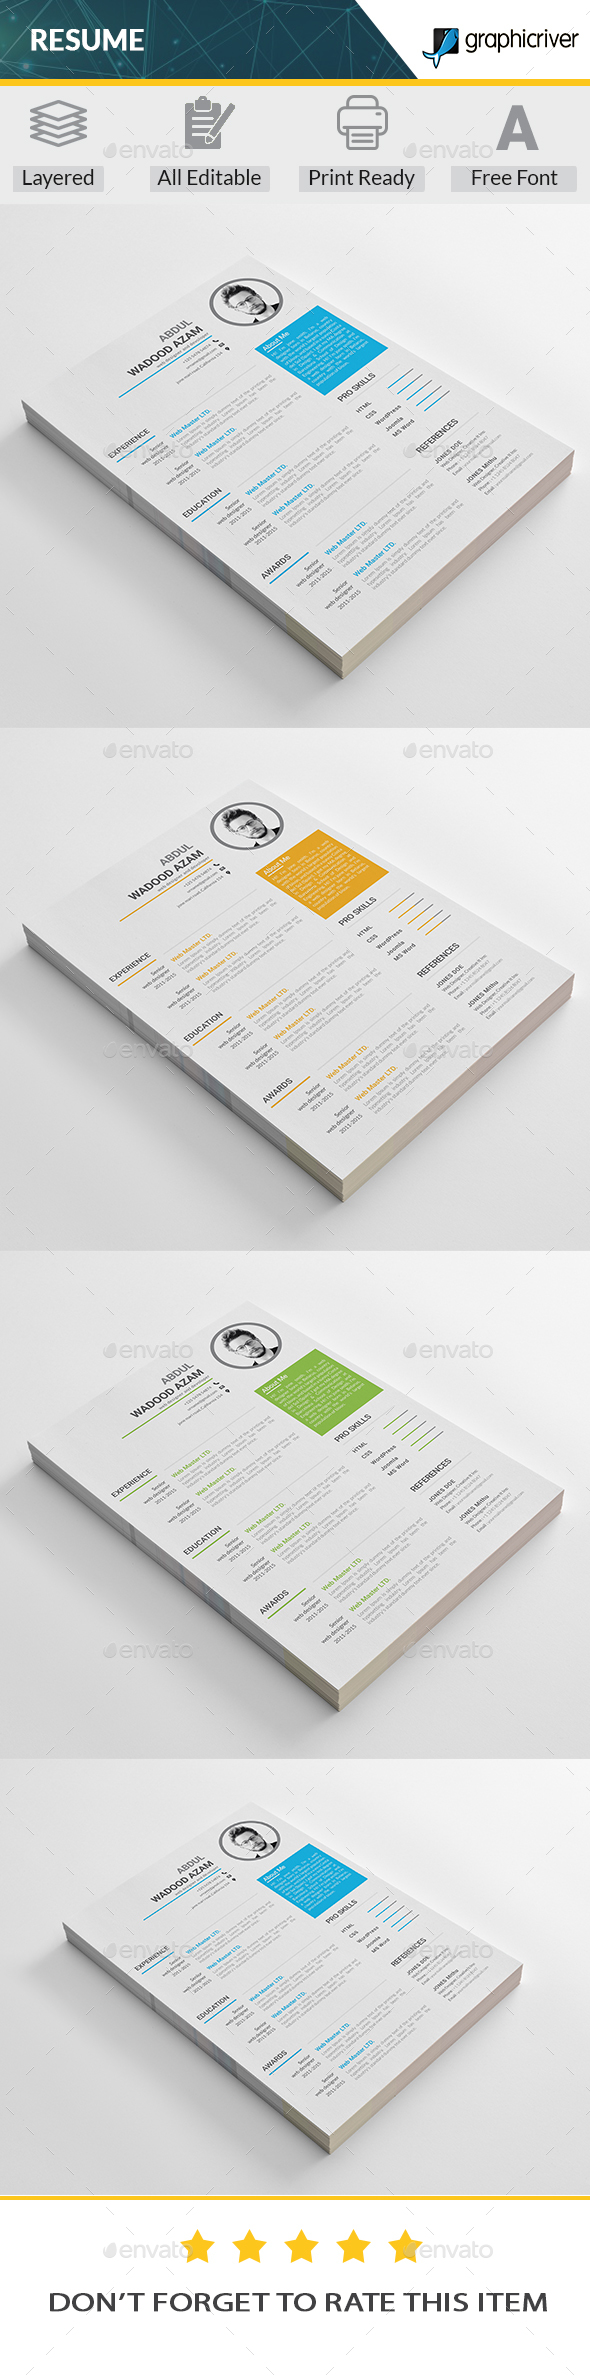 GraphicRiver Resume 20376659